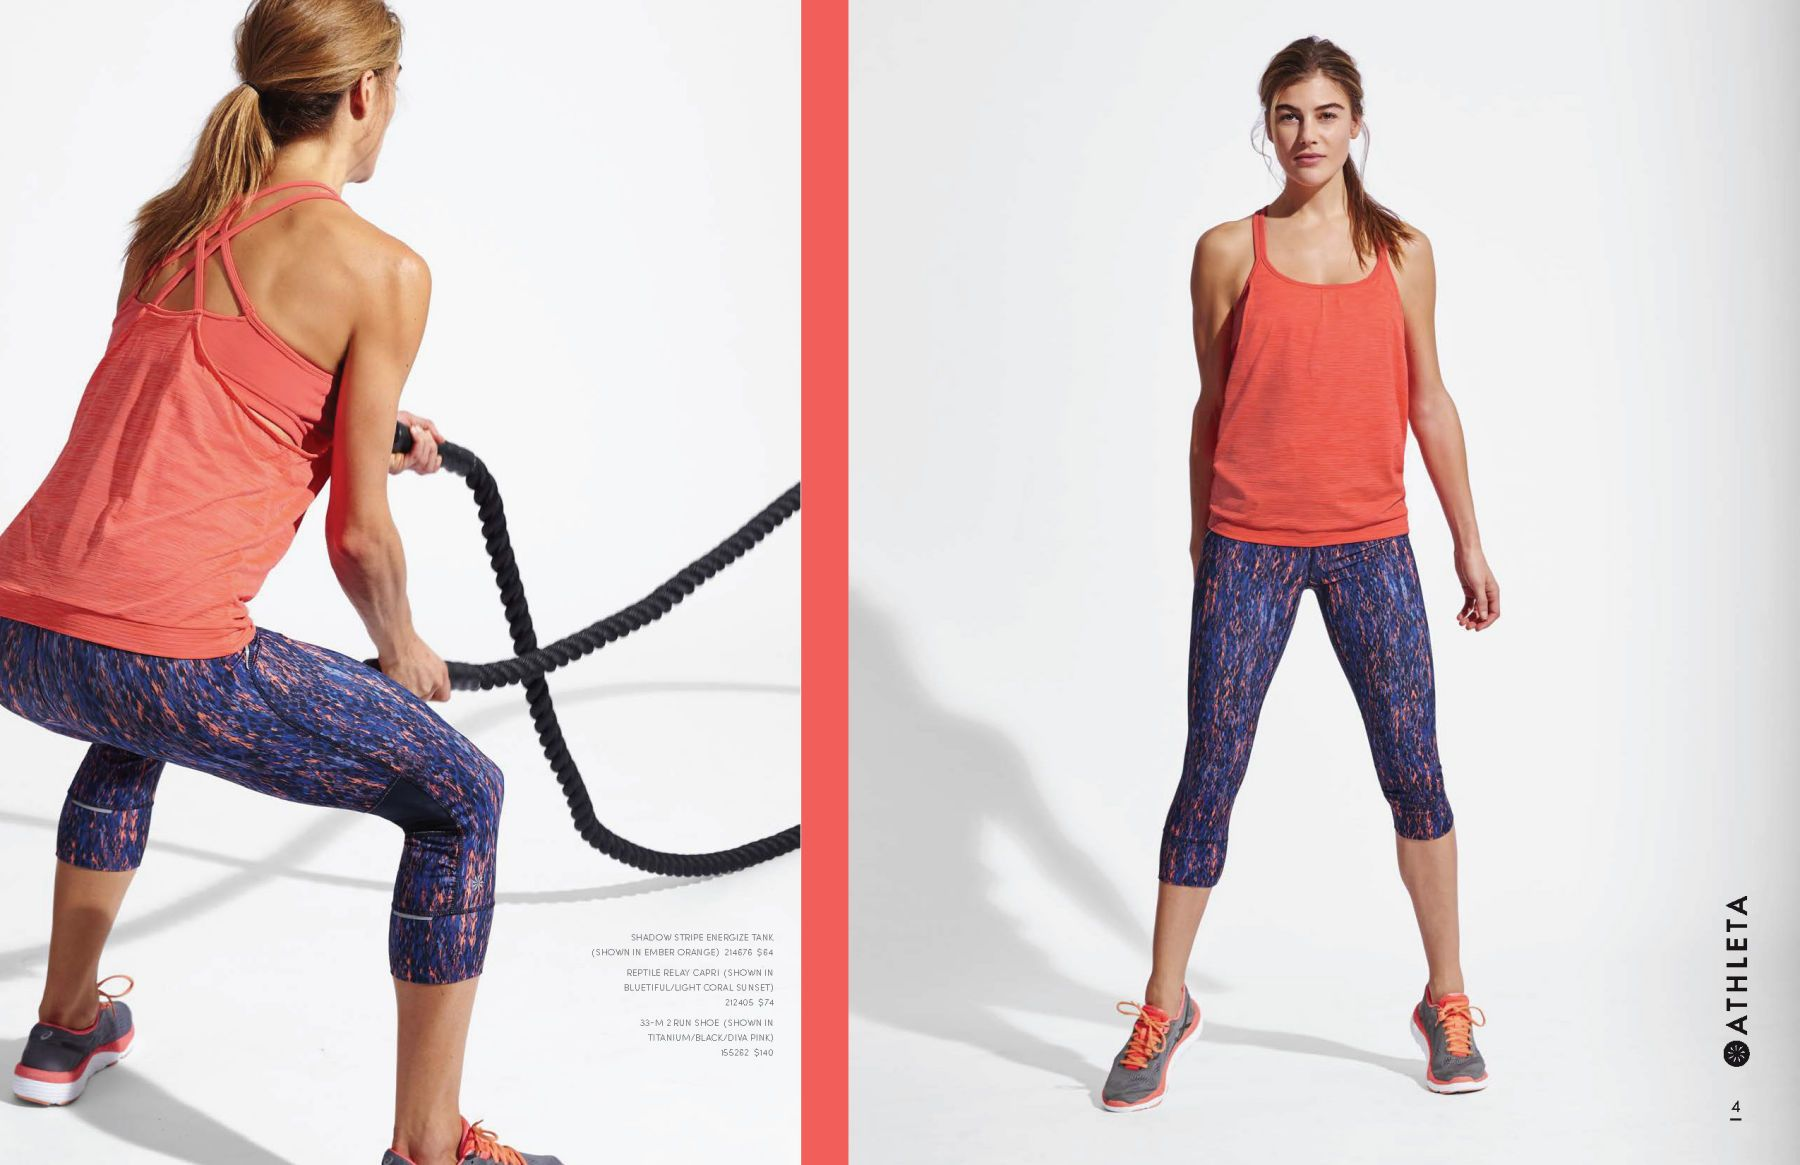 1athleta_lookbook_final_page_04.jpg